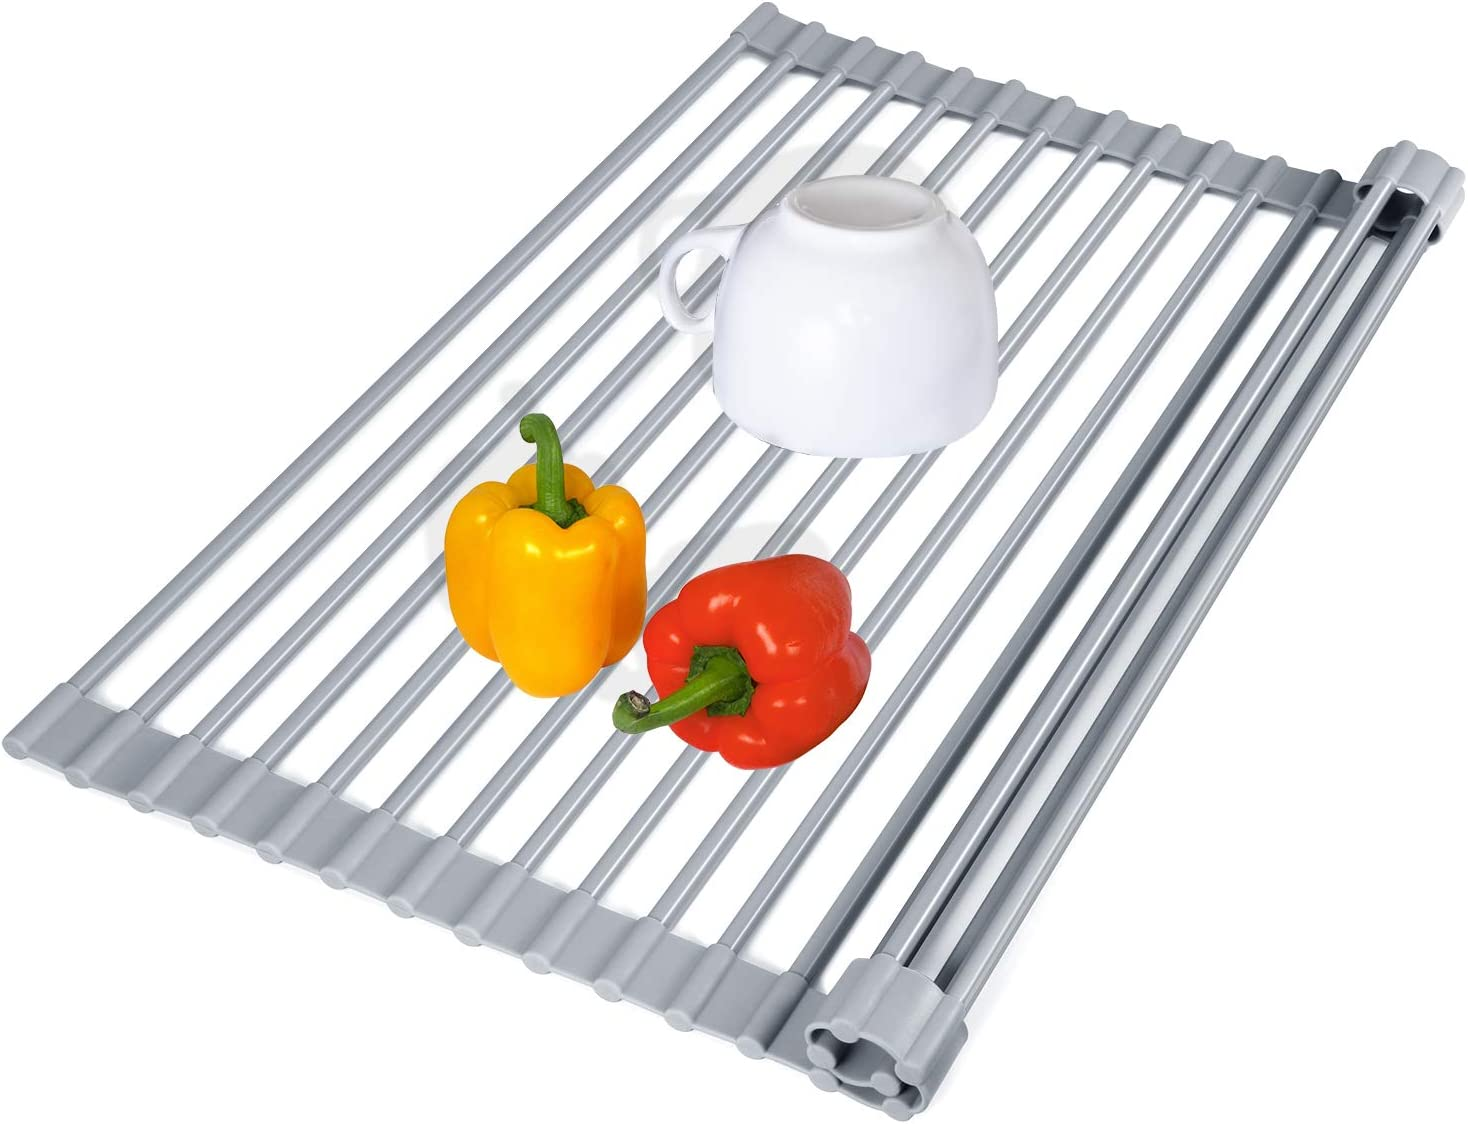 TBMax Roll Up Dish Drying Rack, Food-Grade Silicone-Coated Stainless Steel Over The Sink Rack, Heavy Duty Roll Up Sink Drying Rack